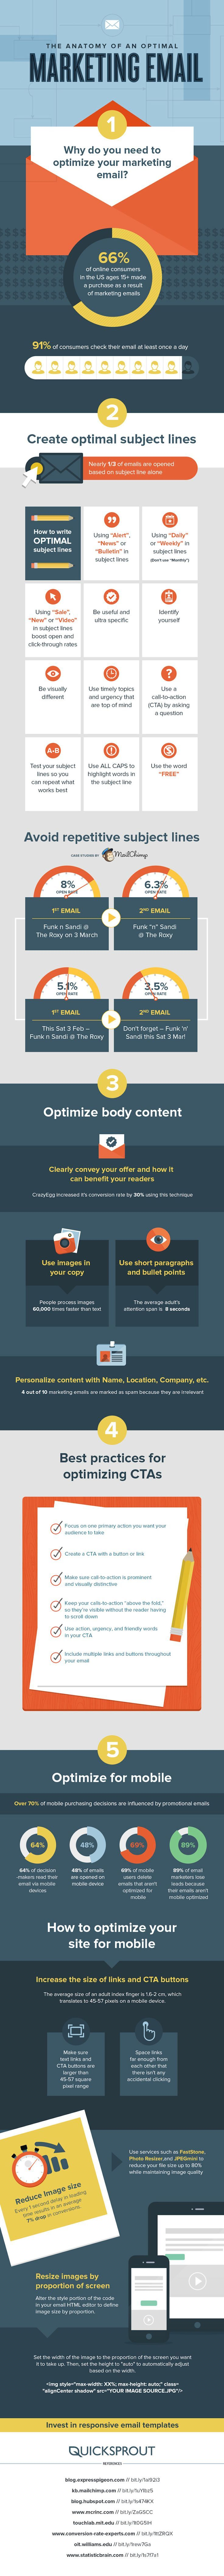 The Anatomy of an Optimal Marketing Email Did you know 66% of all consumers over the age of 15 made a purchase because of an email? If that doesn't convince you to use email marketing, just look a